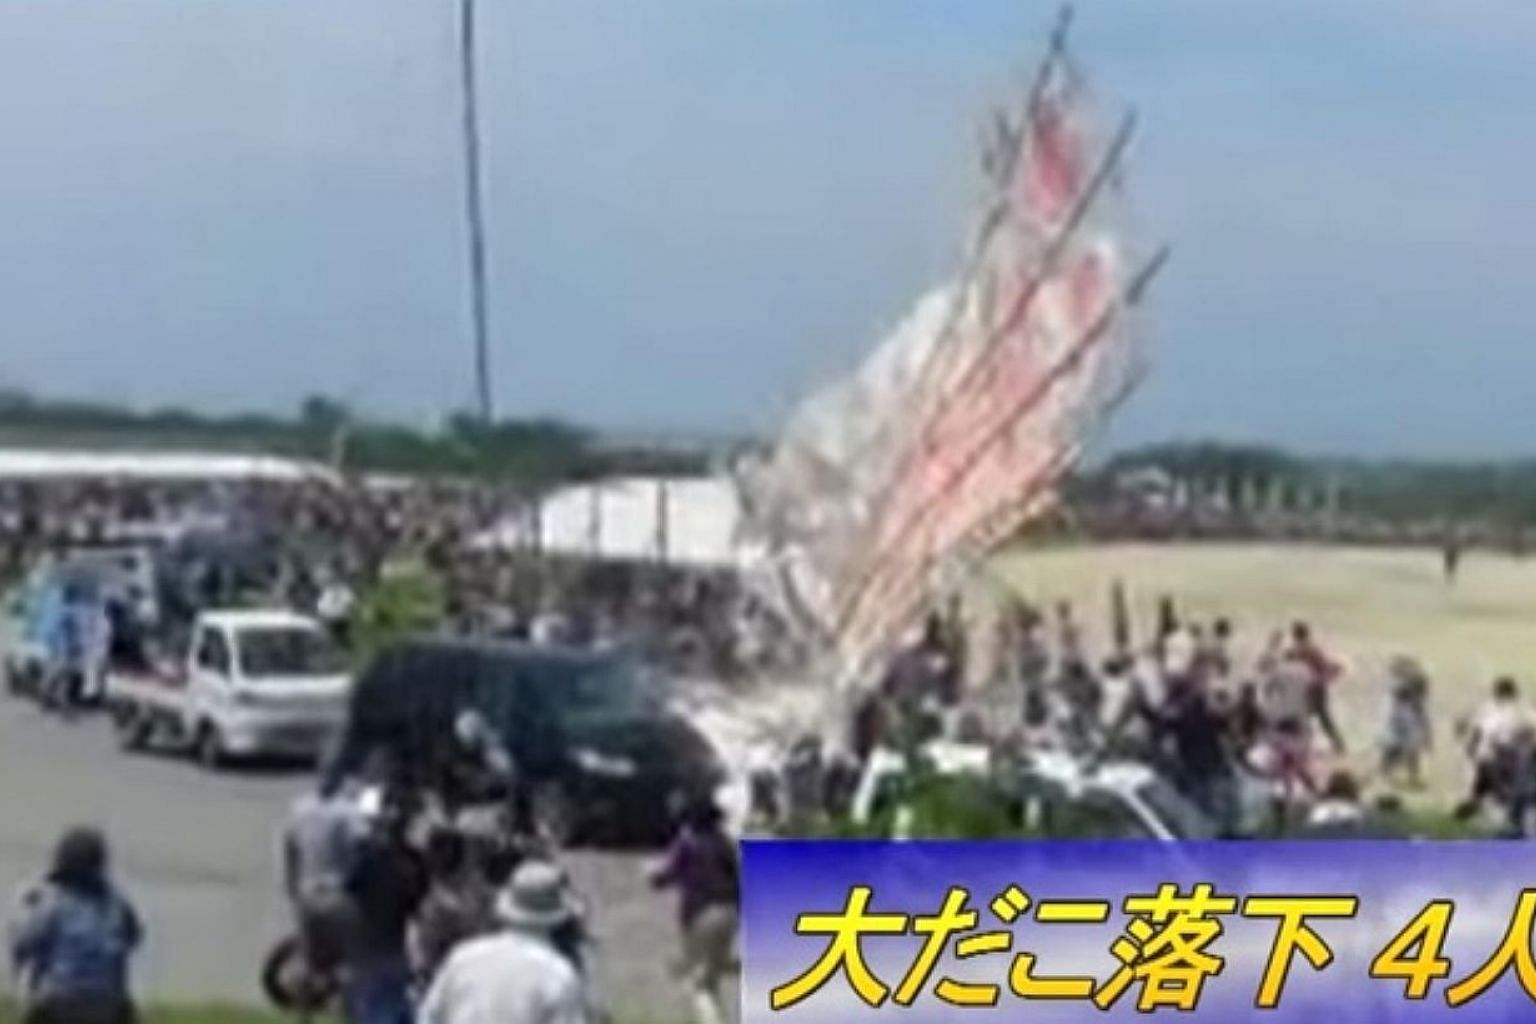 A giant kite weighing three-quarters of a tonne crashed into a crowd of spectators in Japan at the weekend, an official said on Monday, hurting four people including an elderly man. -- PHOTO: SCREENGRAB FROM YOUTUBE